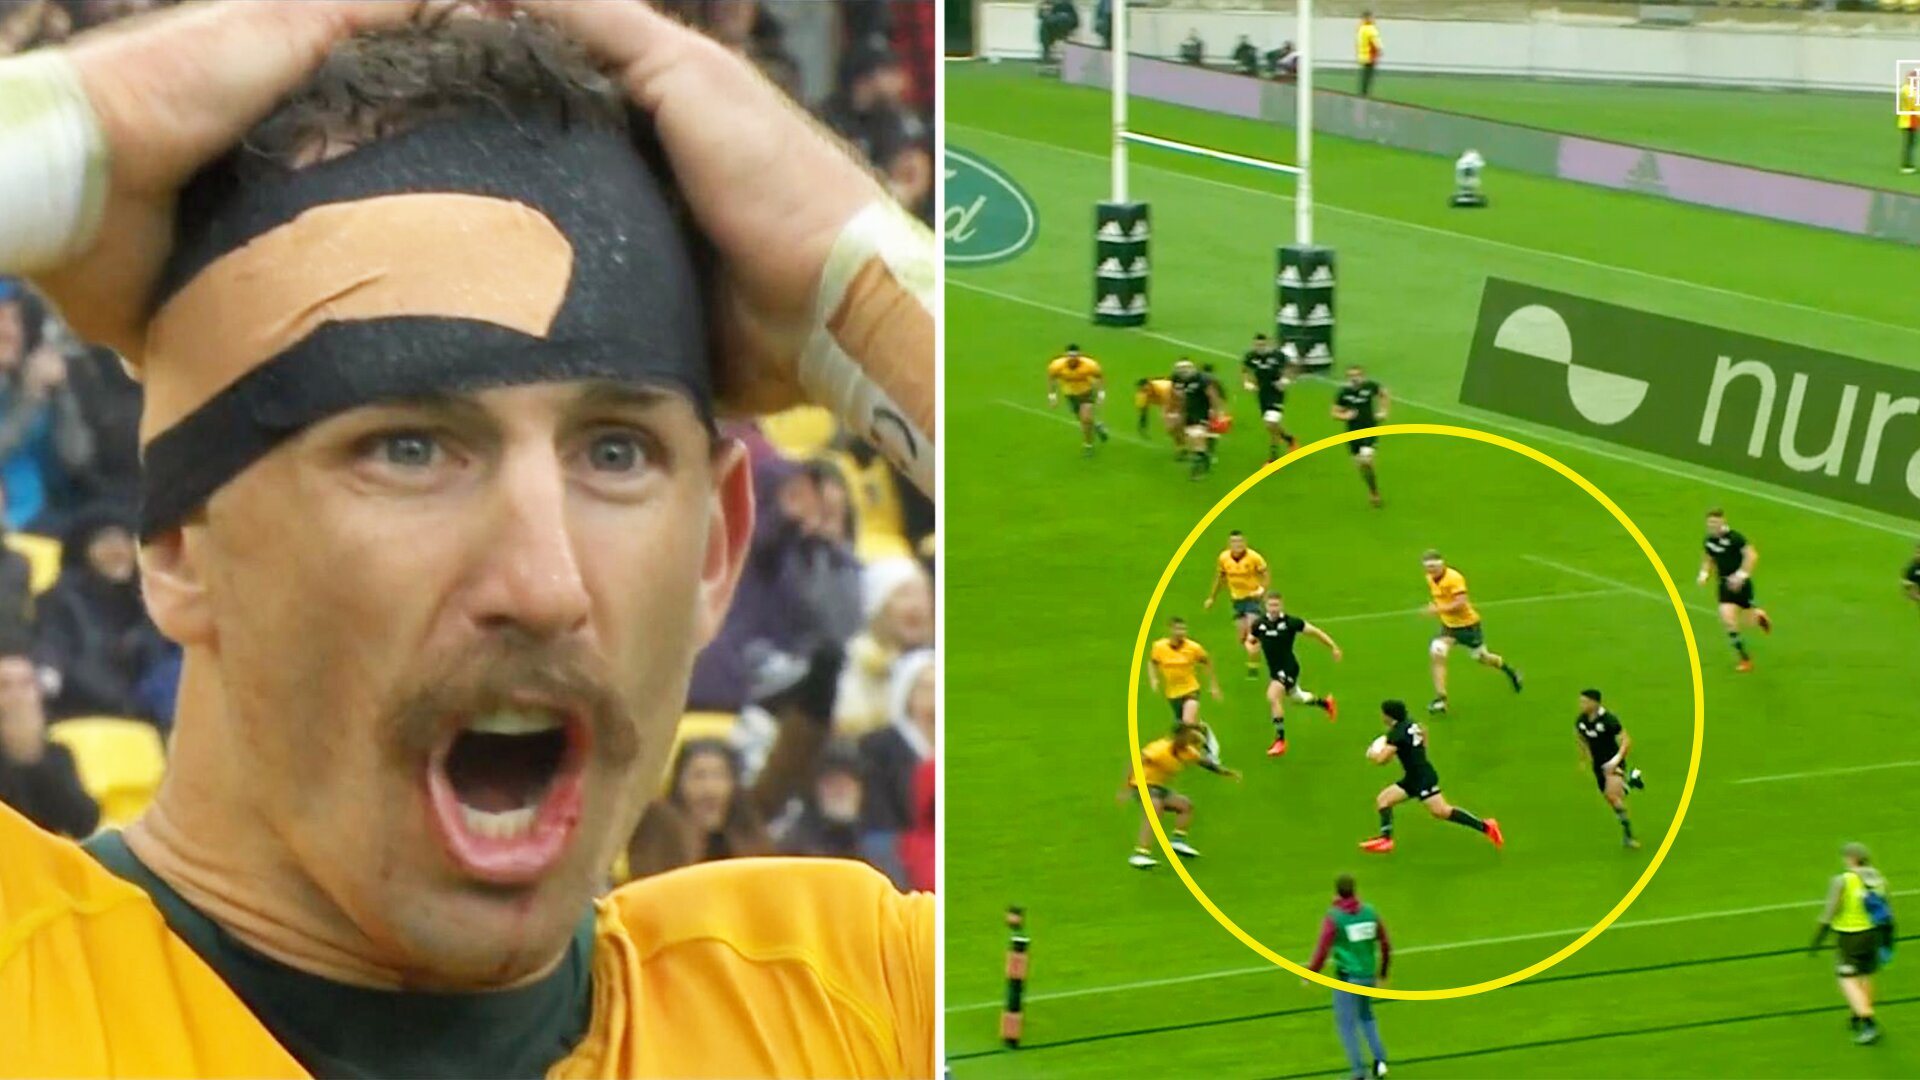 WATCH: One of the greatest test matches ever as resurgent Australia draw with All Blacks in epic finish in Wellington